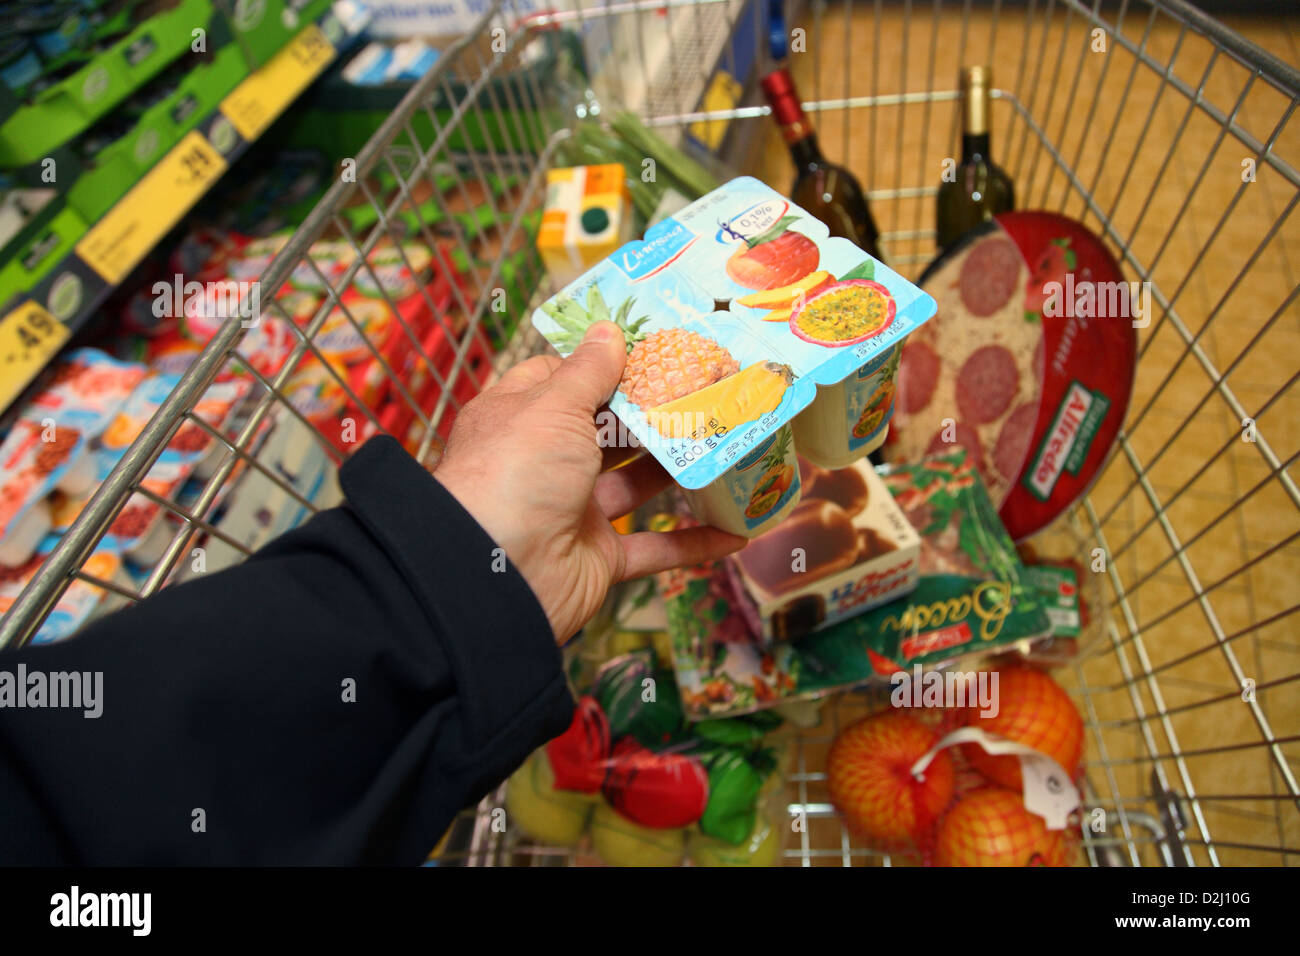 Bremen, Germany, a man grabs fruit yogurts in a shopping cart - Stock Image